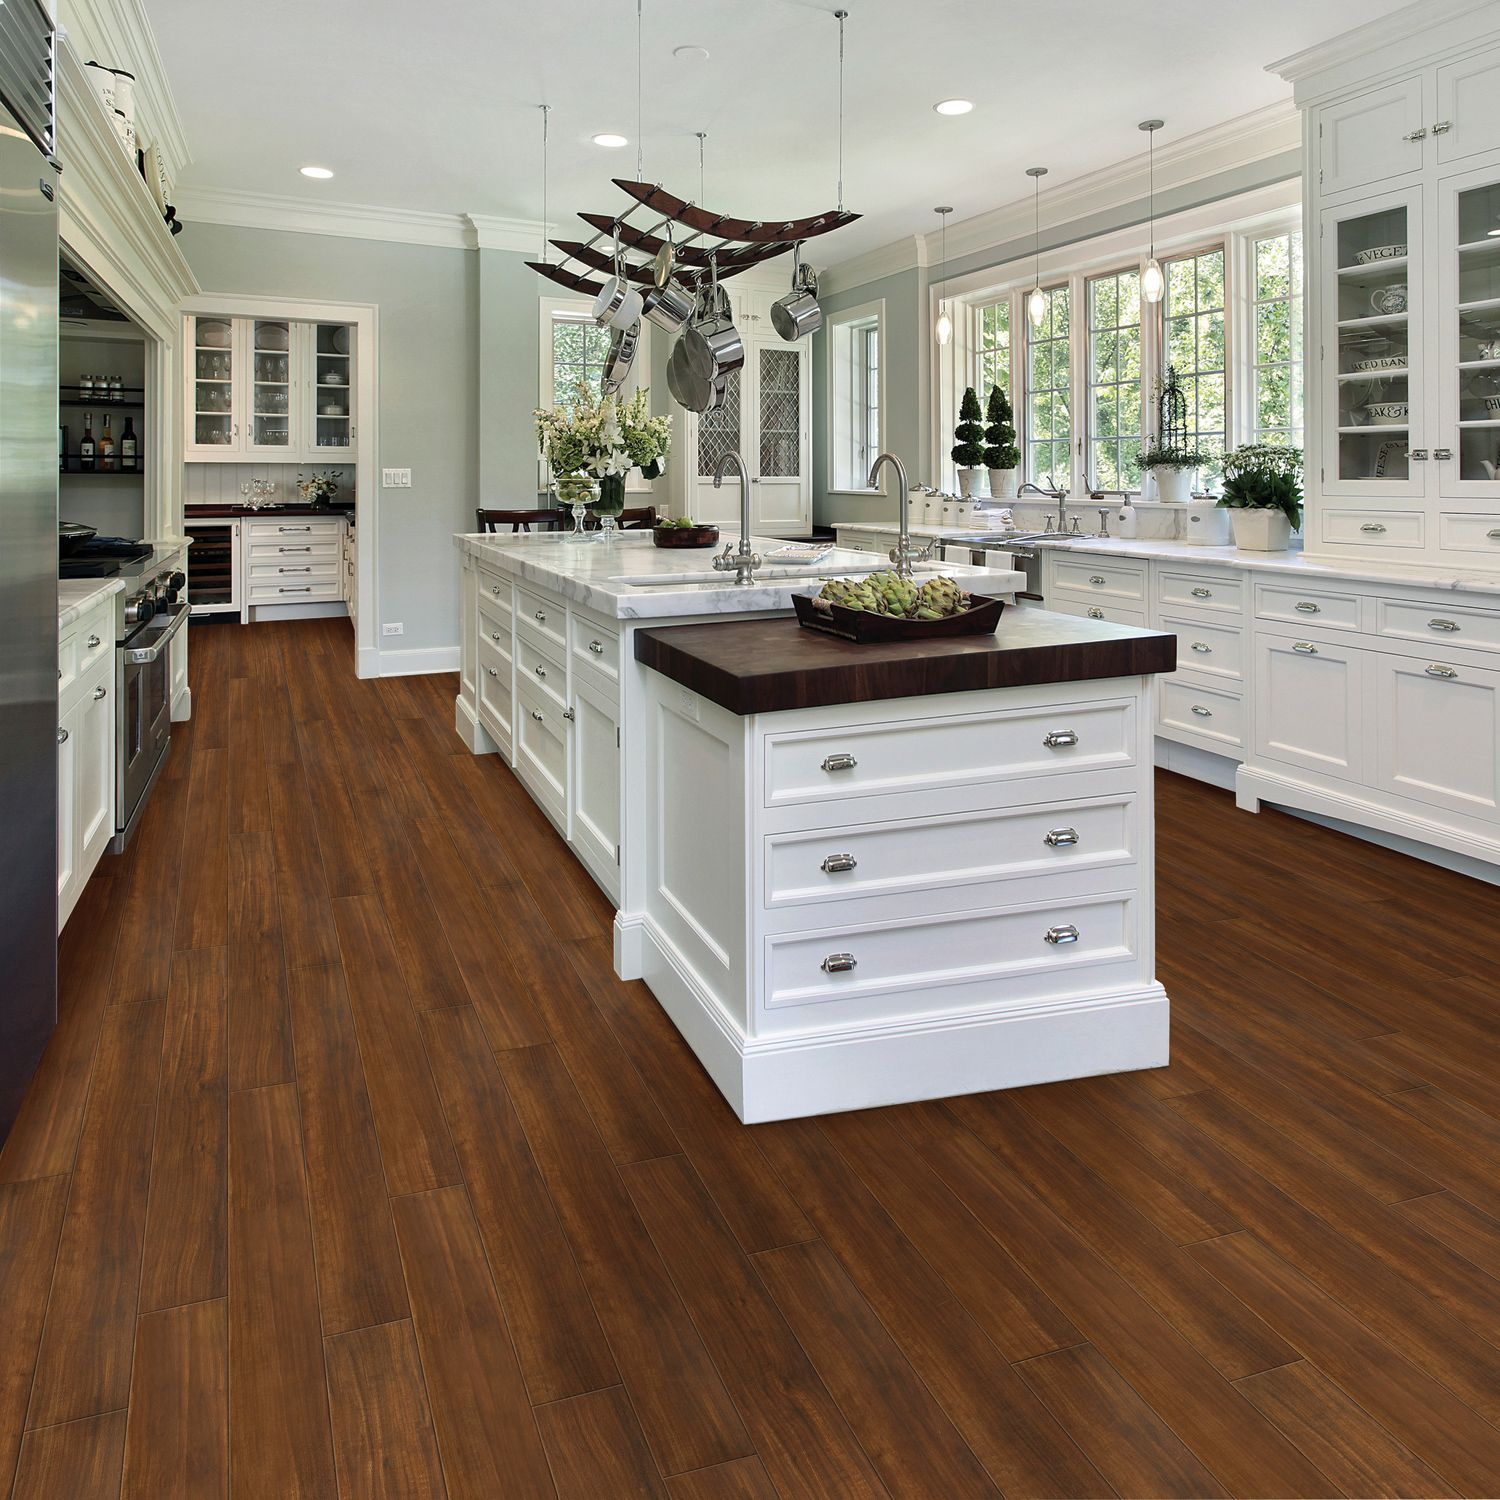 Select Surfaces American Walnut Luxury Vinyl Plank Flooring